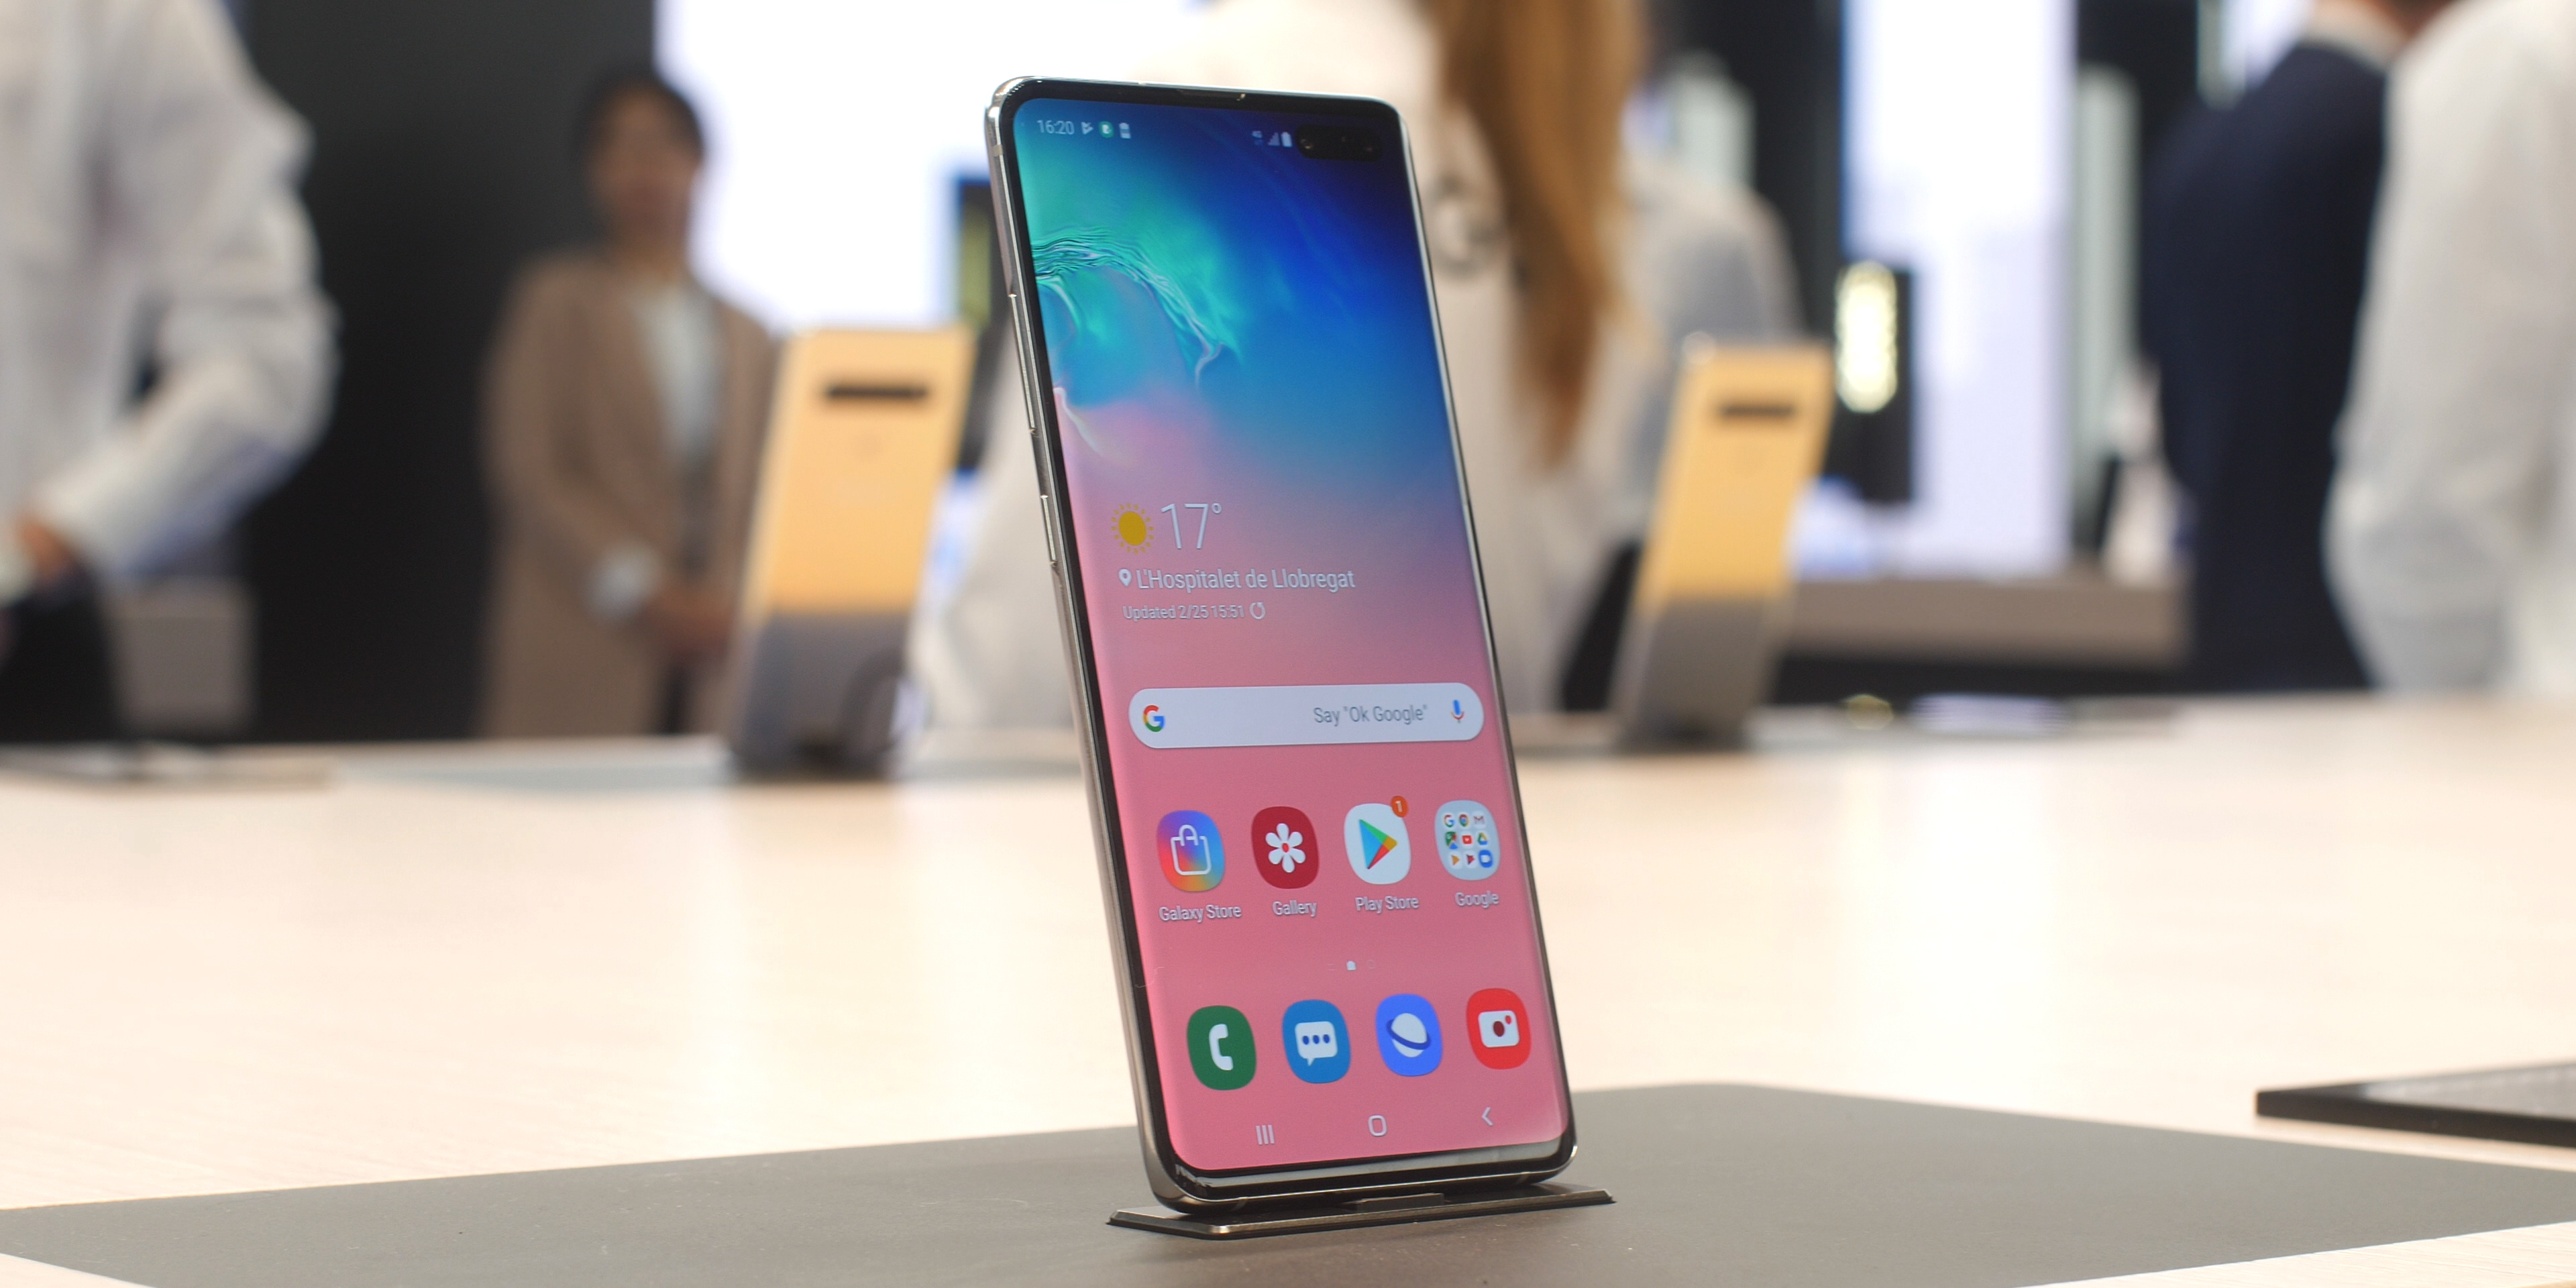 Samsung Galaxy S10 face unlock is laughably insecure